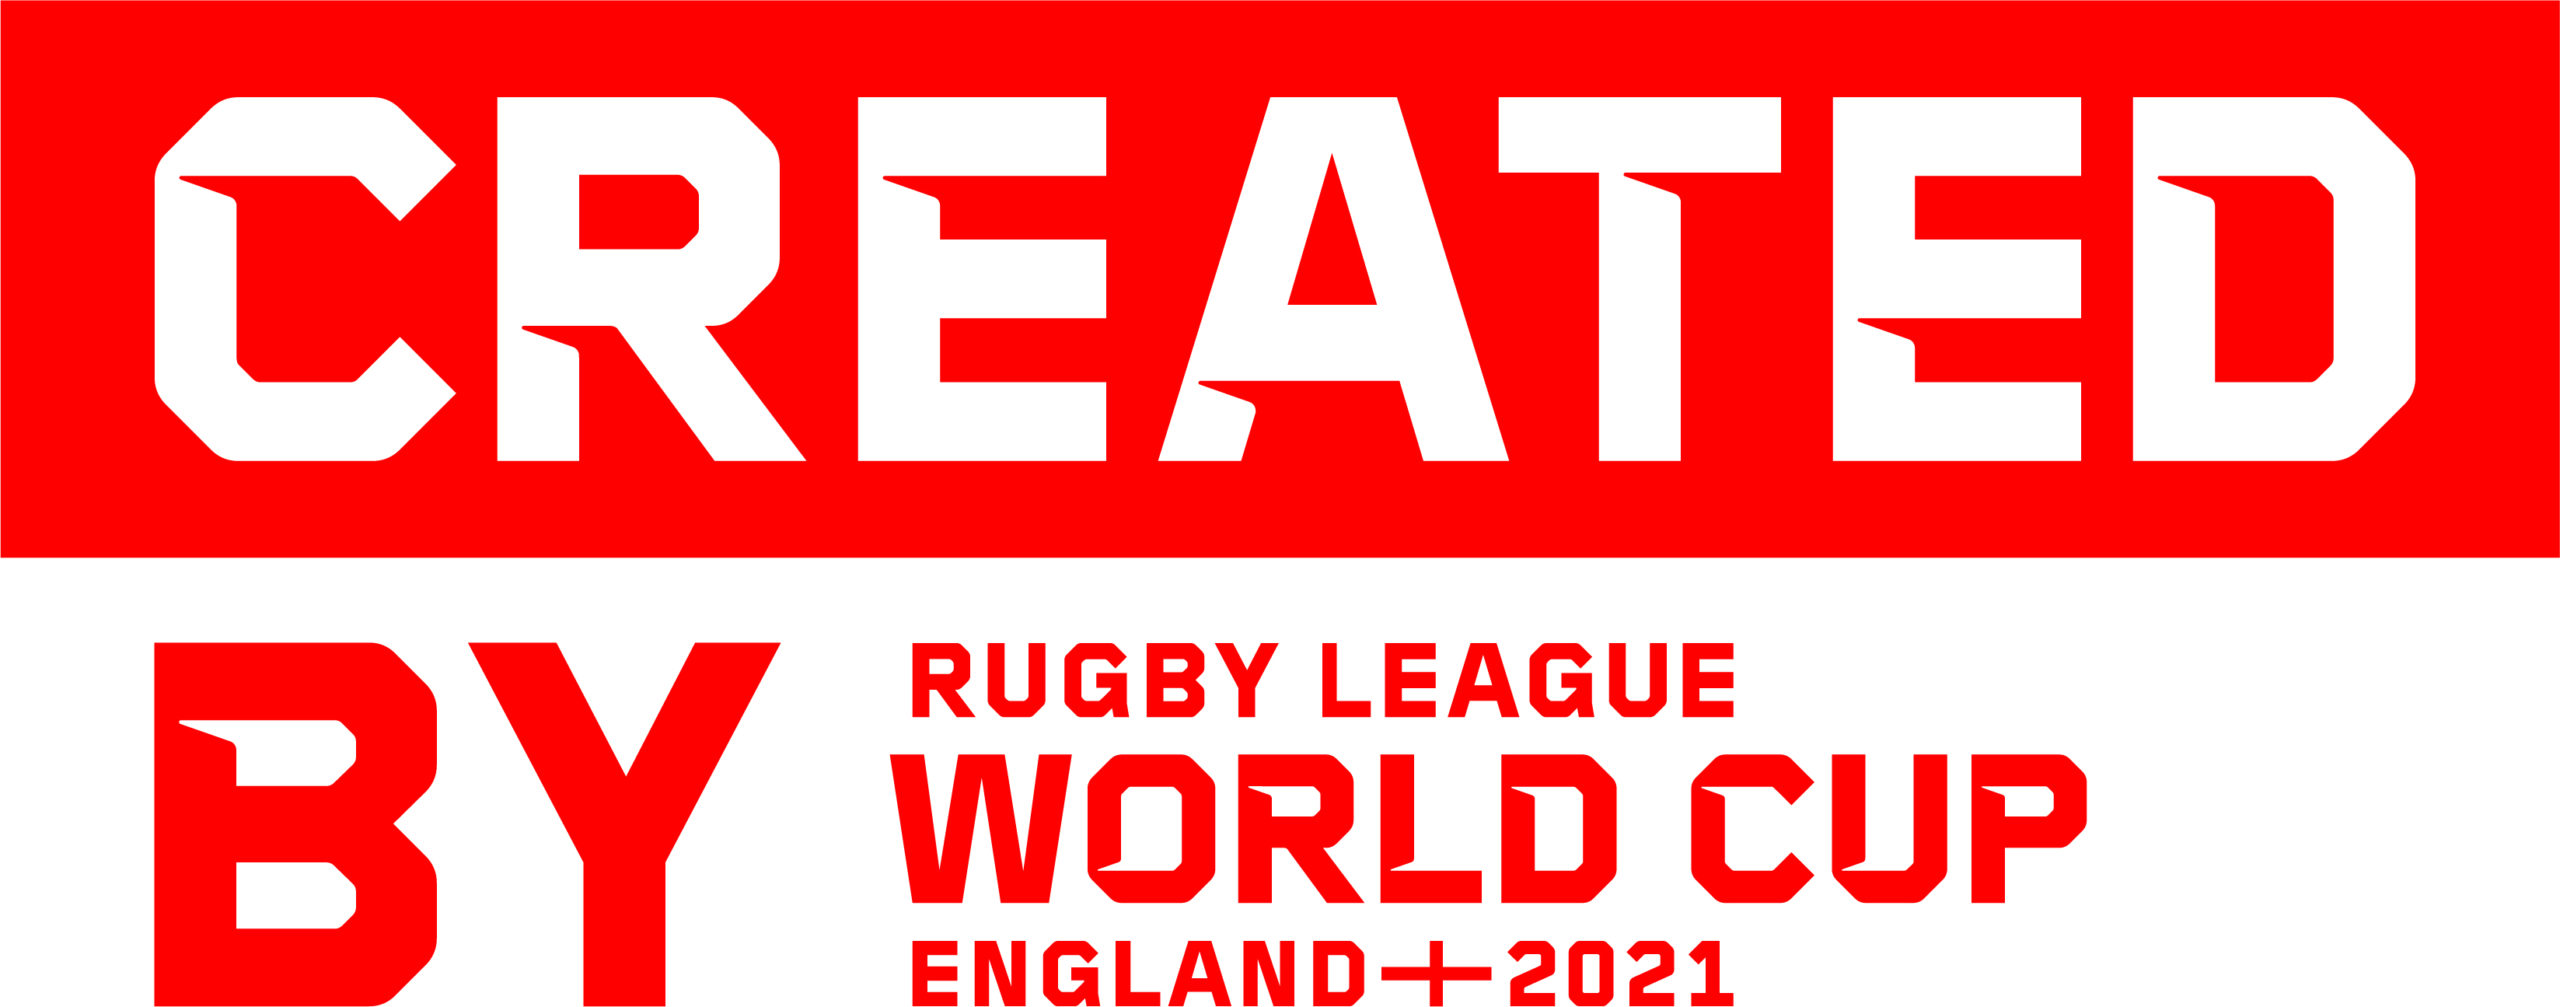 Created by Rugby League World Cup England 2021